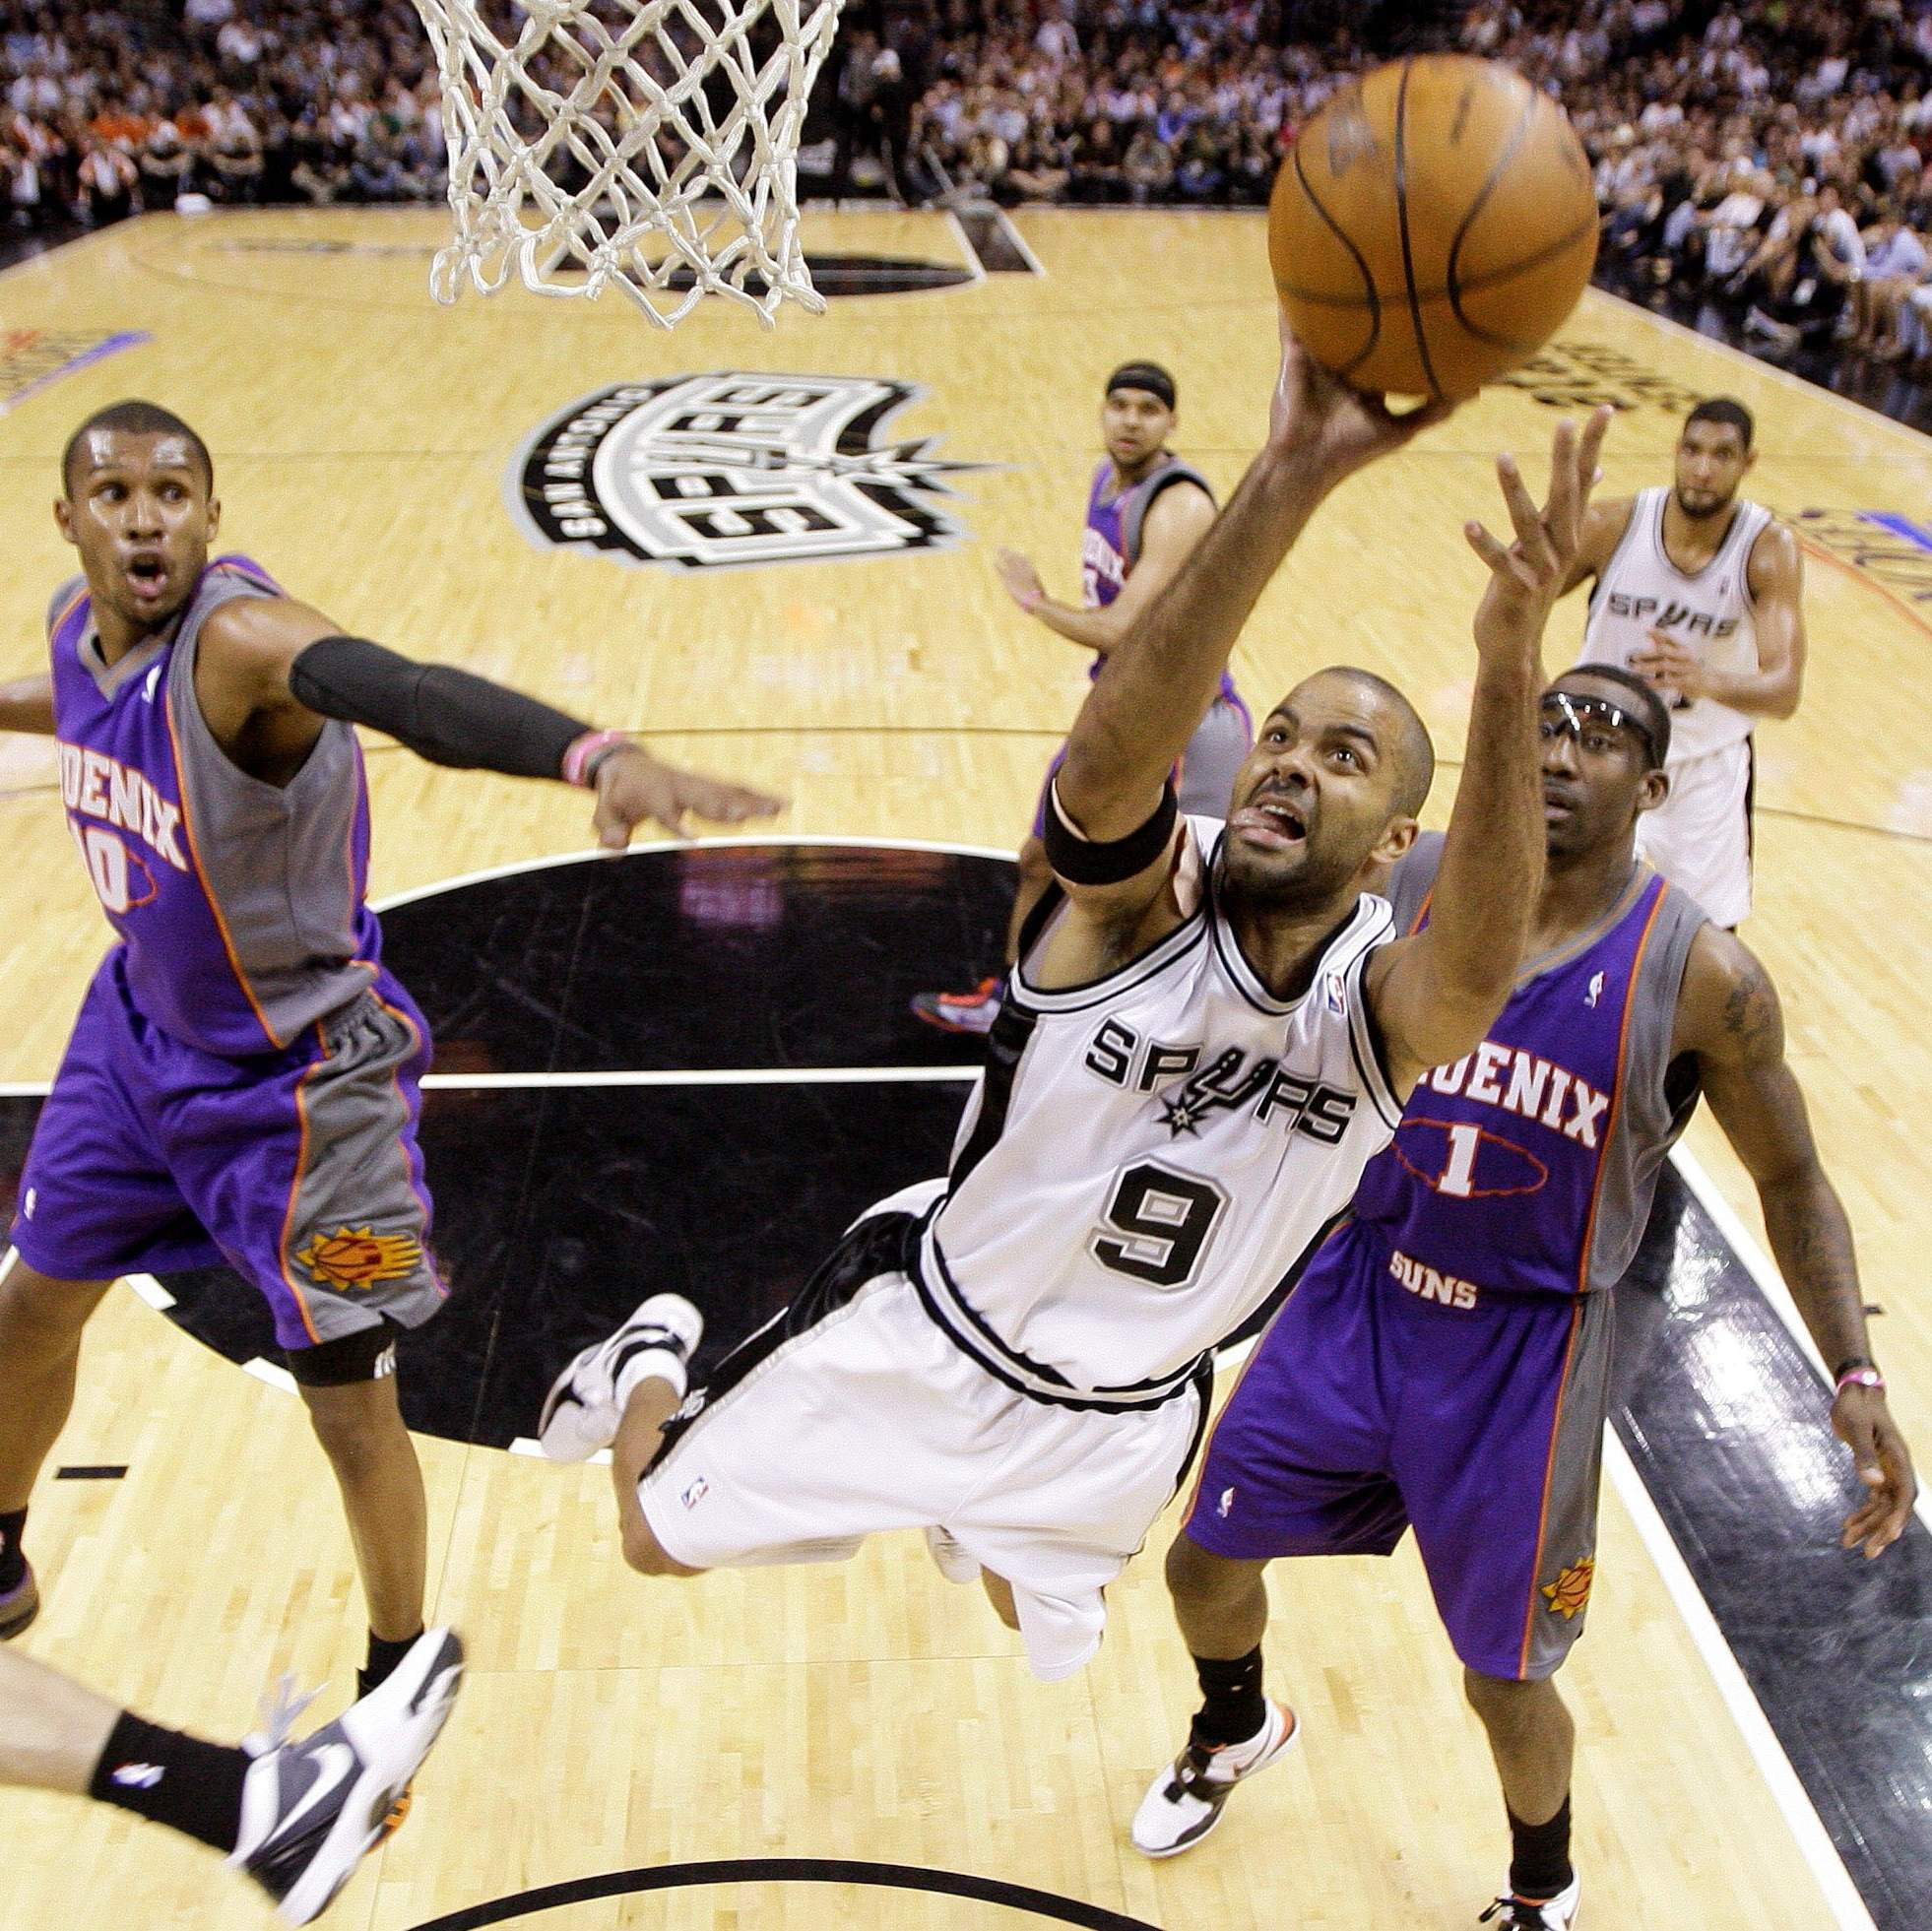 Tony Parker says he's retiring from NBA after 18 seasons